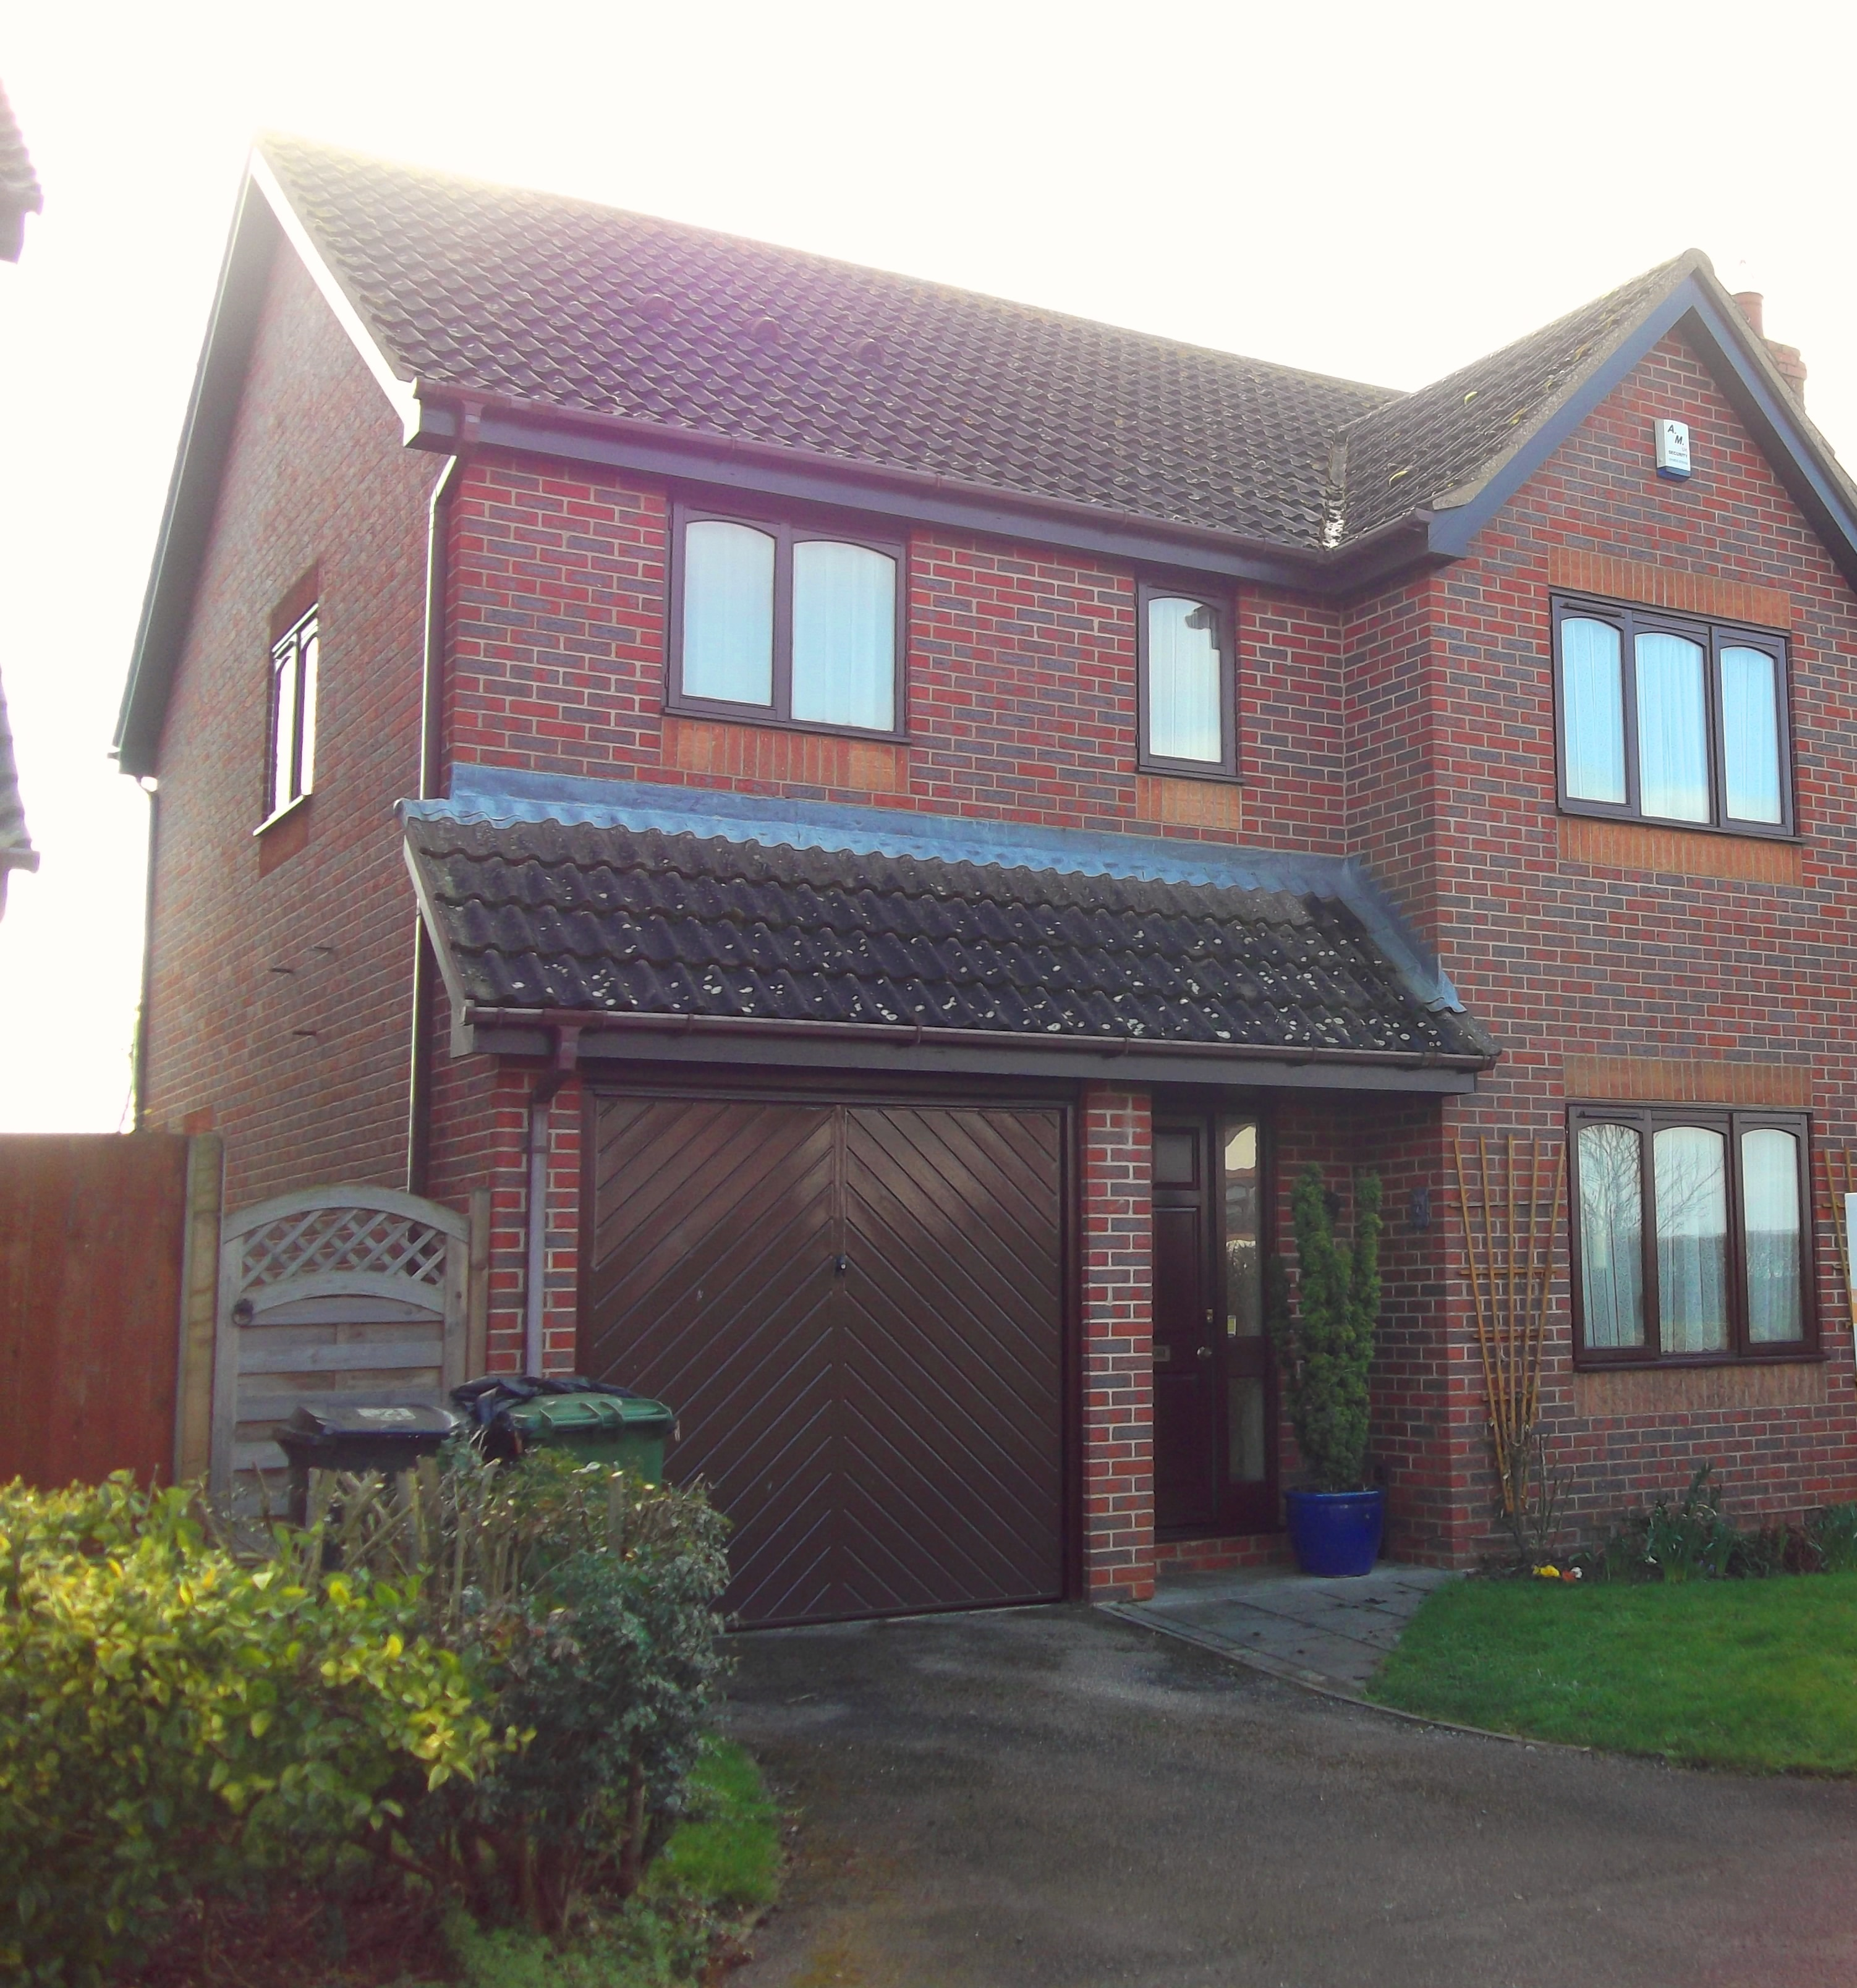 4 Bedroom Property Attleborough